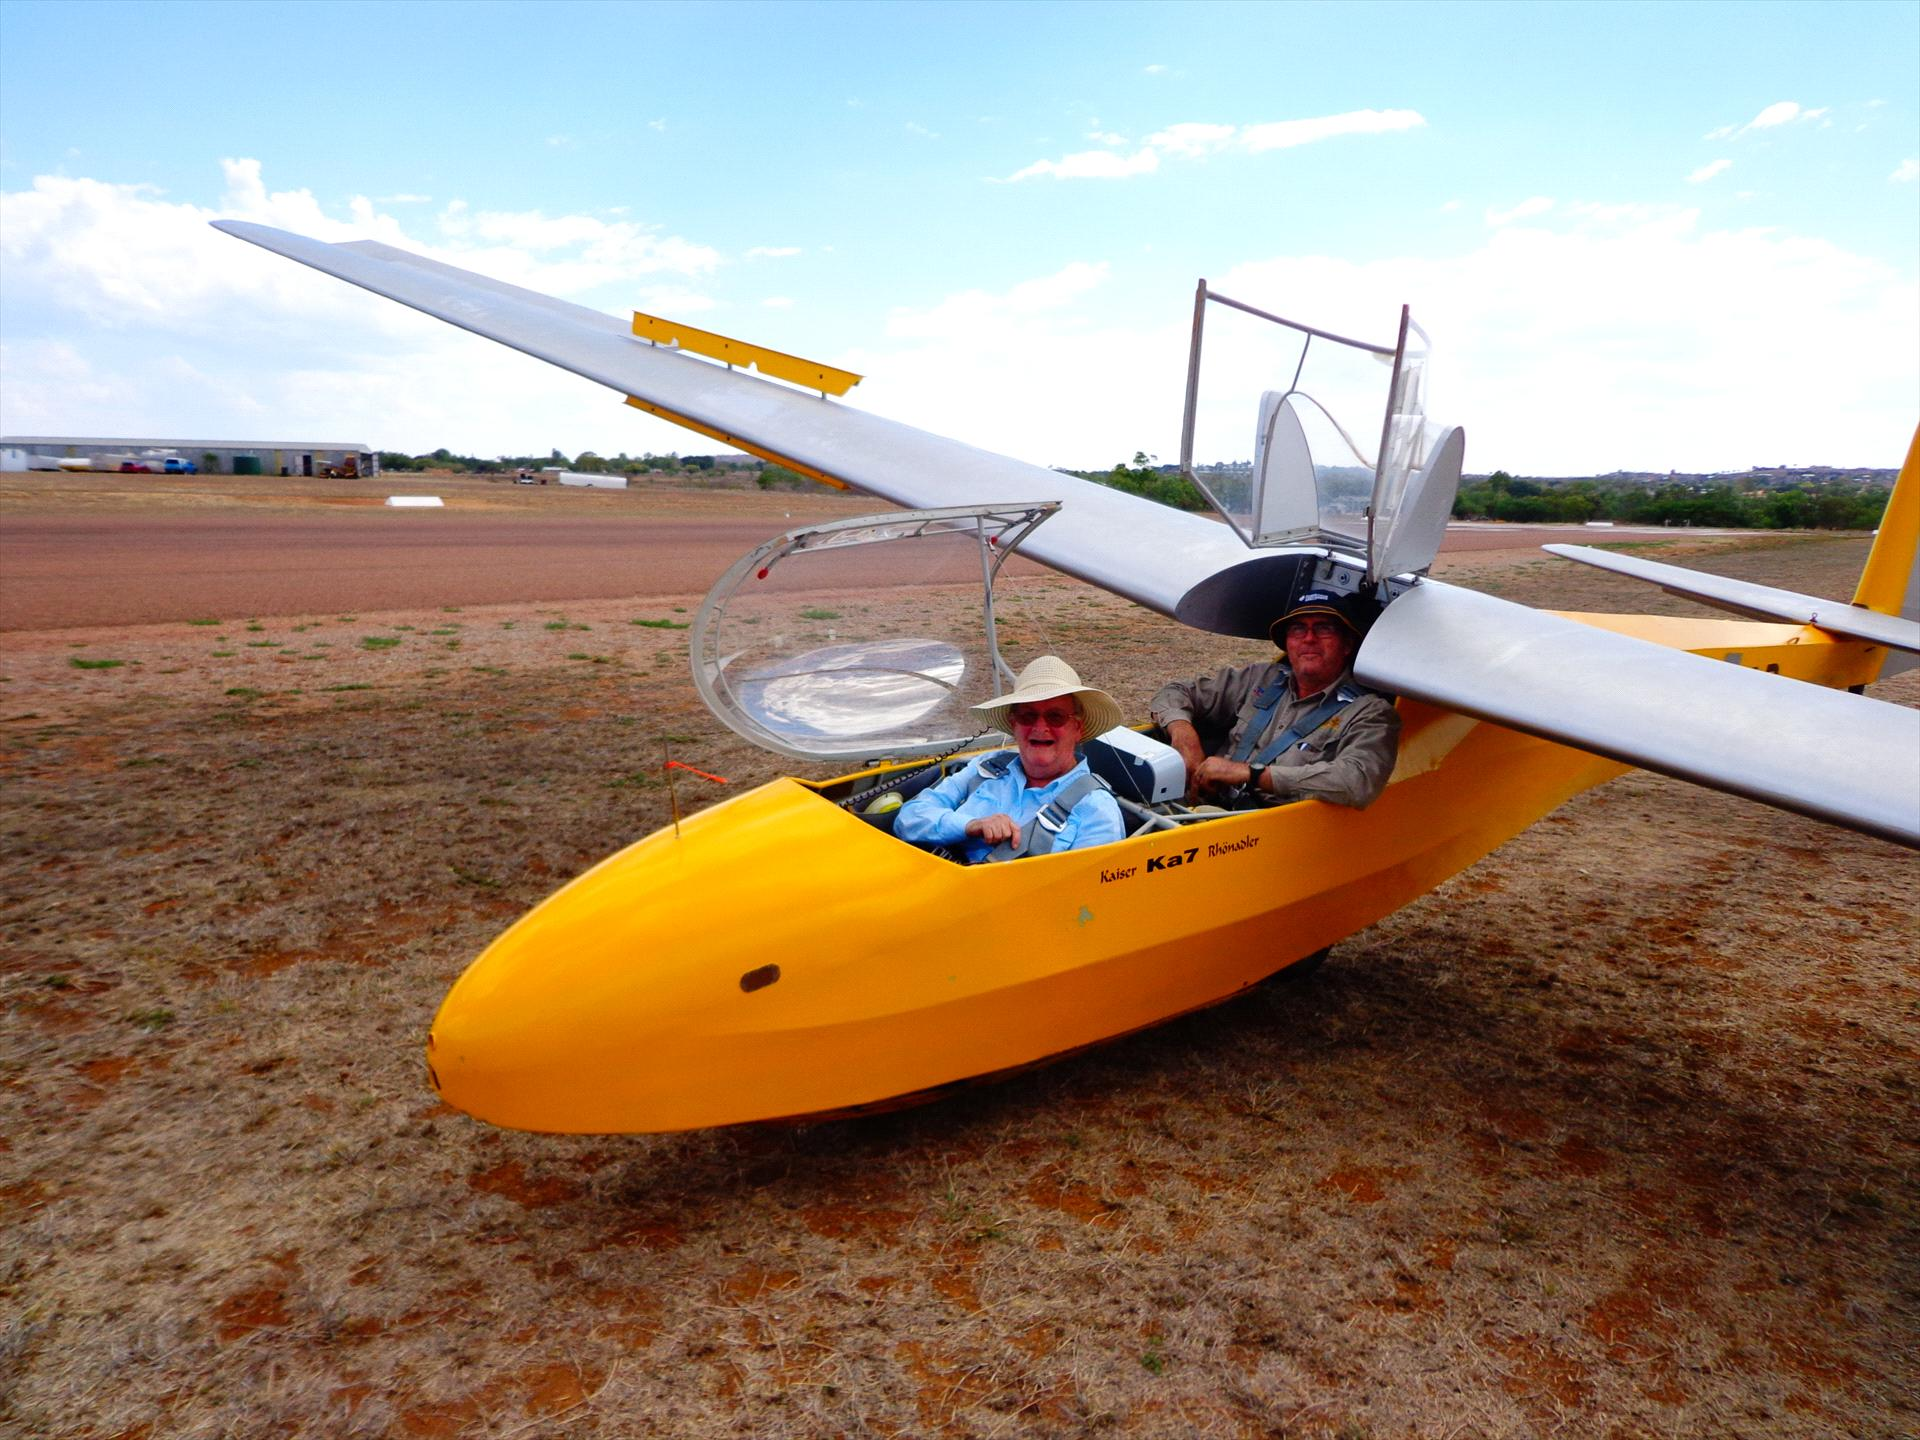 NORTH QUEENSLAND SOARING CENTRE